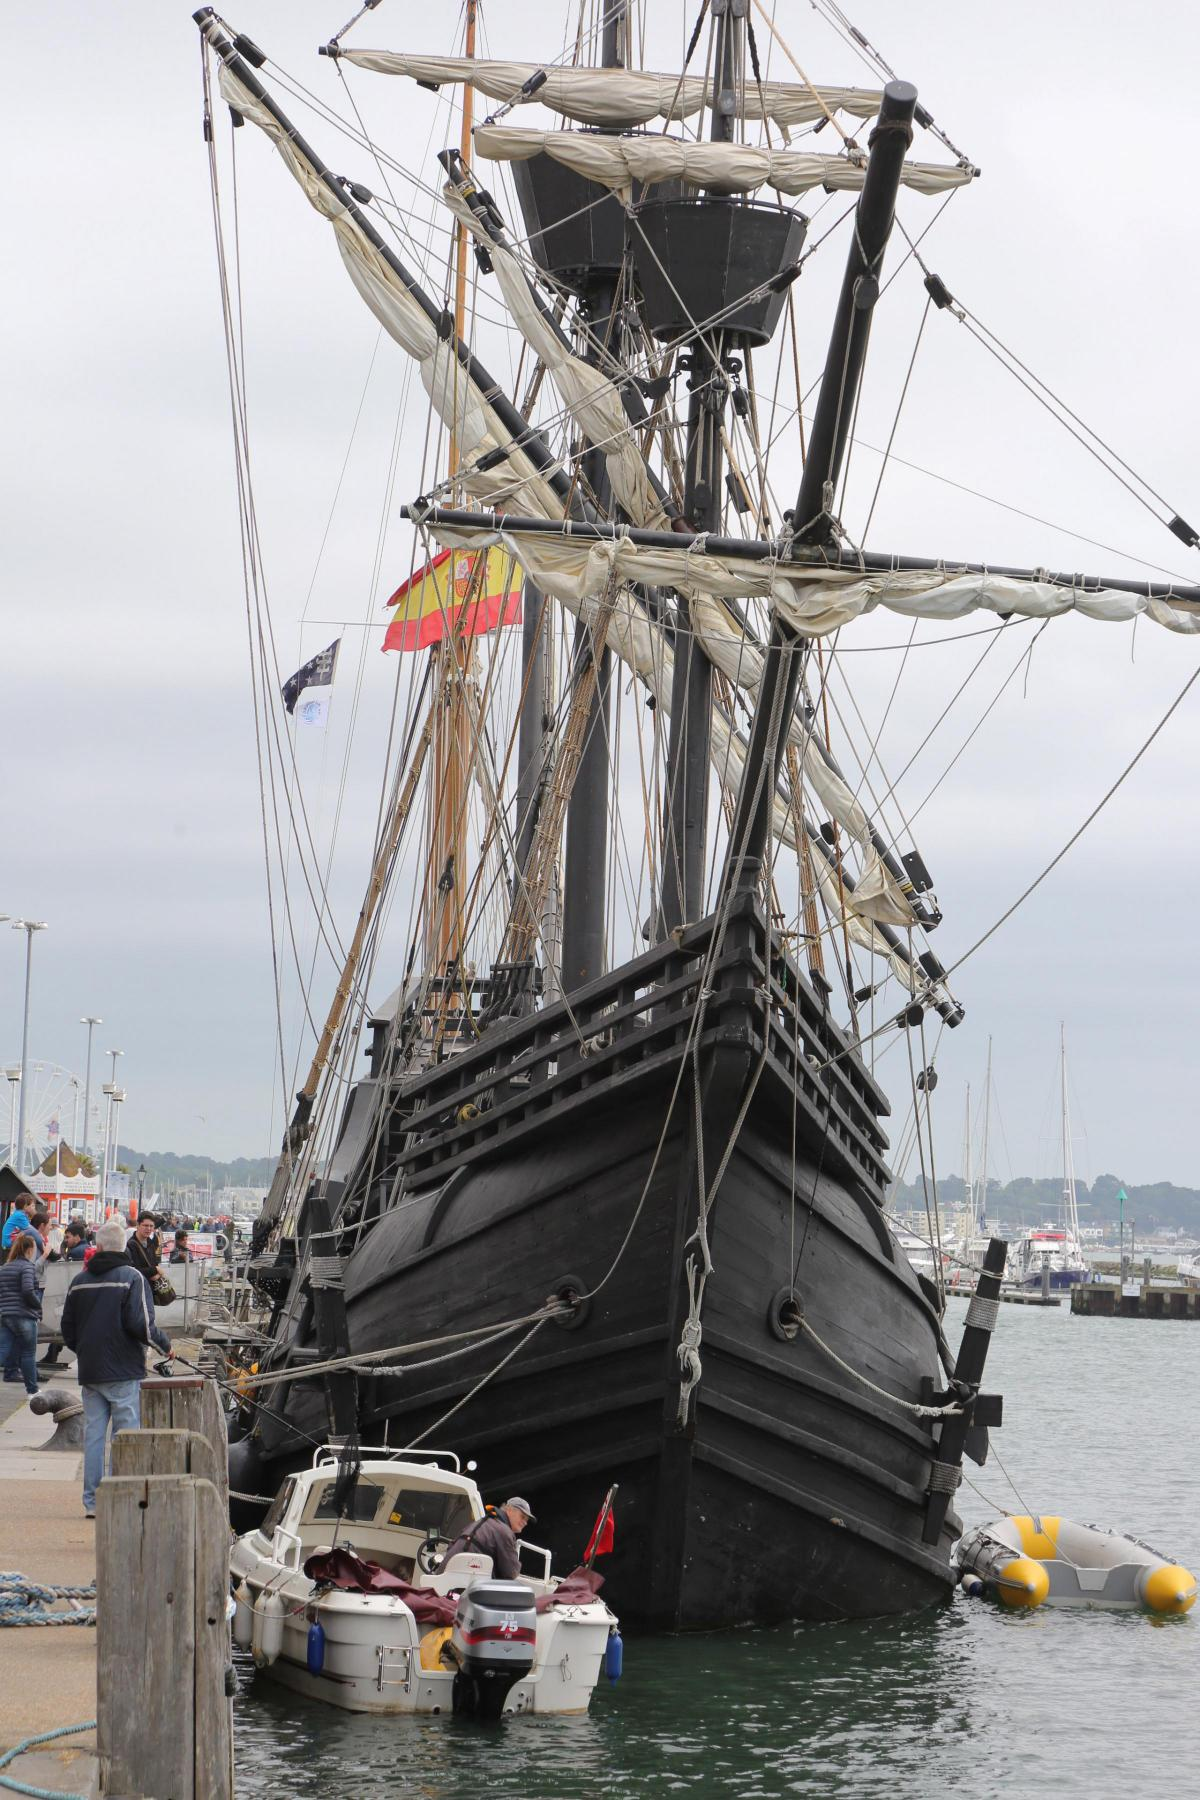 replica of first ship to circumnavigate the world opens in poole